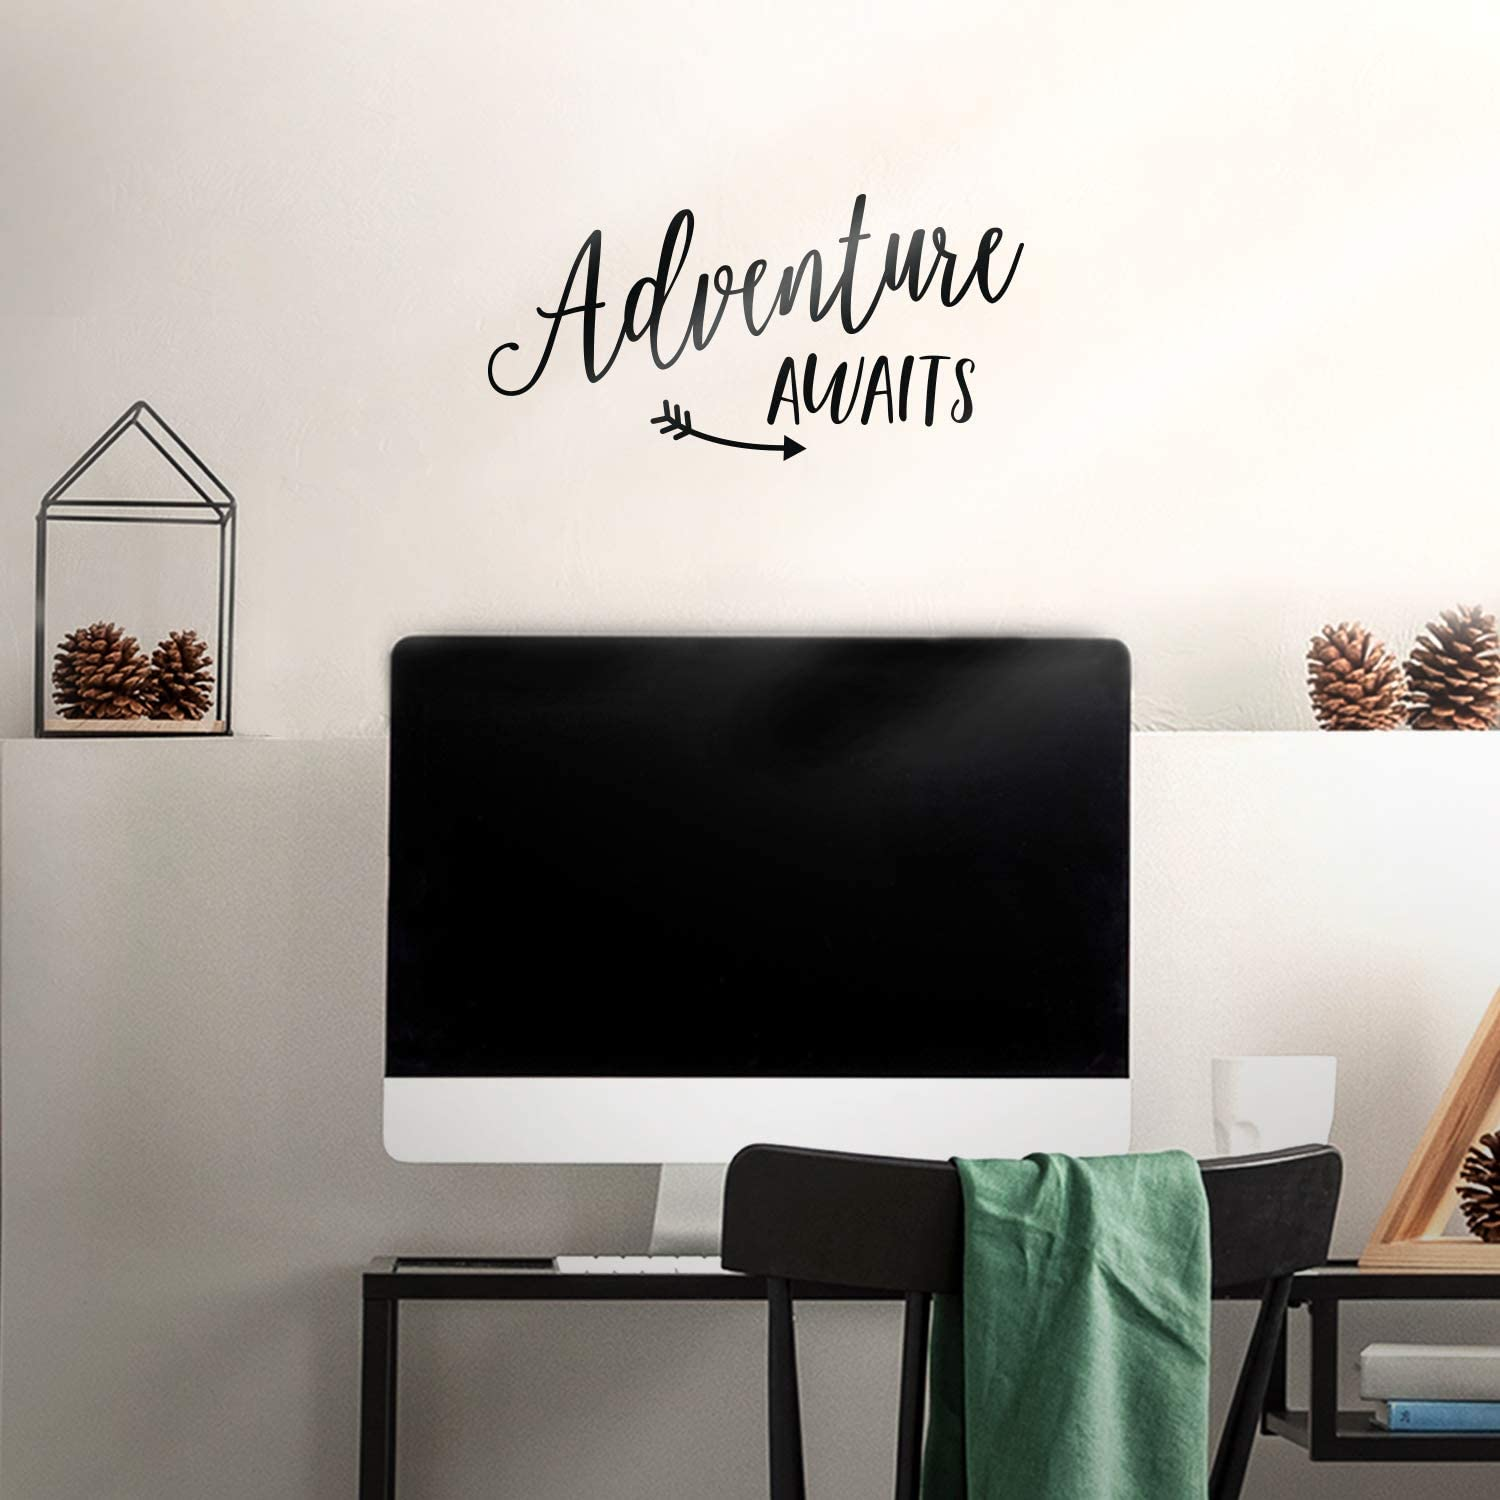 Vinyl Wall Art Decal - Adventure Awaits - 7